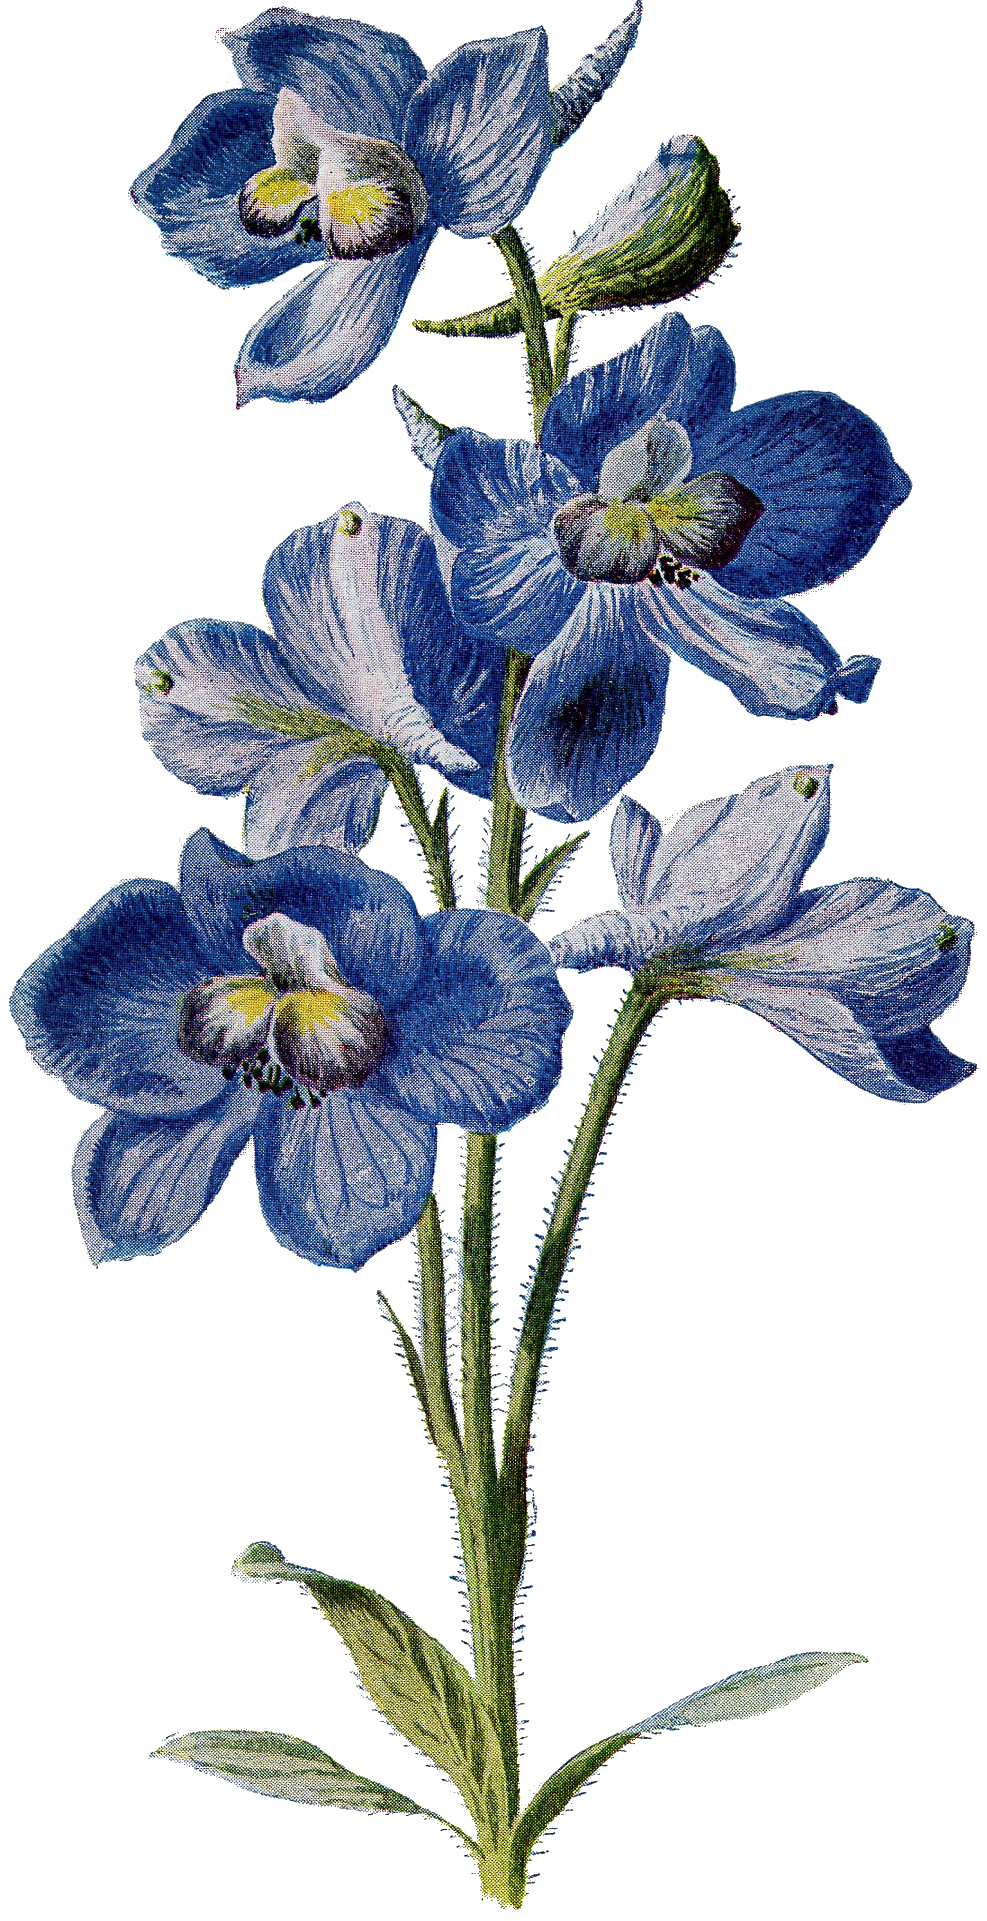 Today I'm sharing this Vintage Beautiful Tall Blue Flower Image